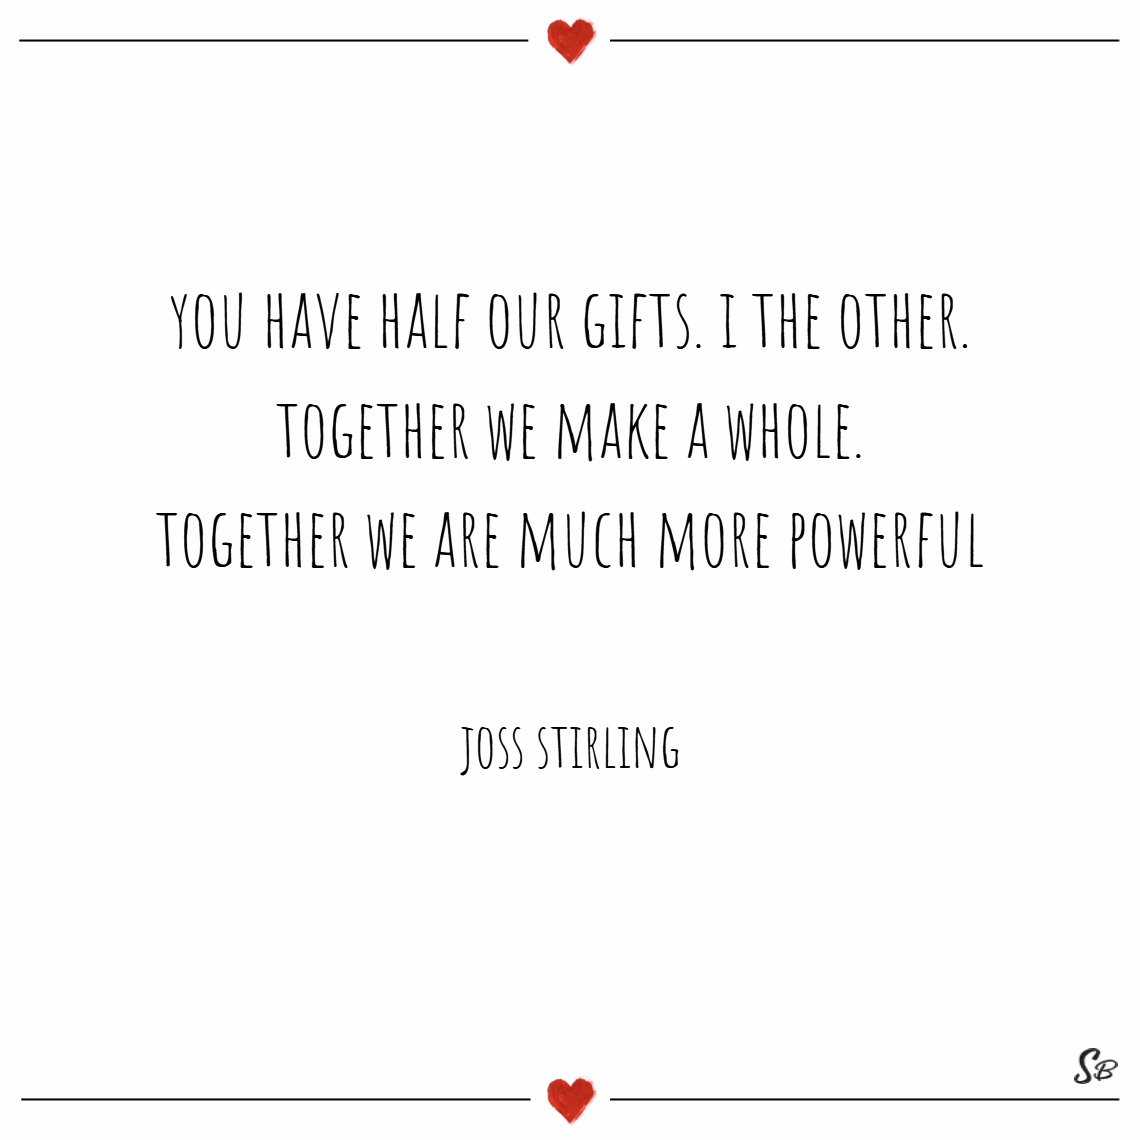 You have half our gifts. i the other. together we make a whole. together we are much more powerful. – joss stirling